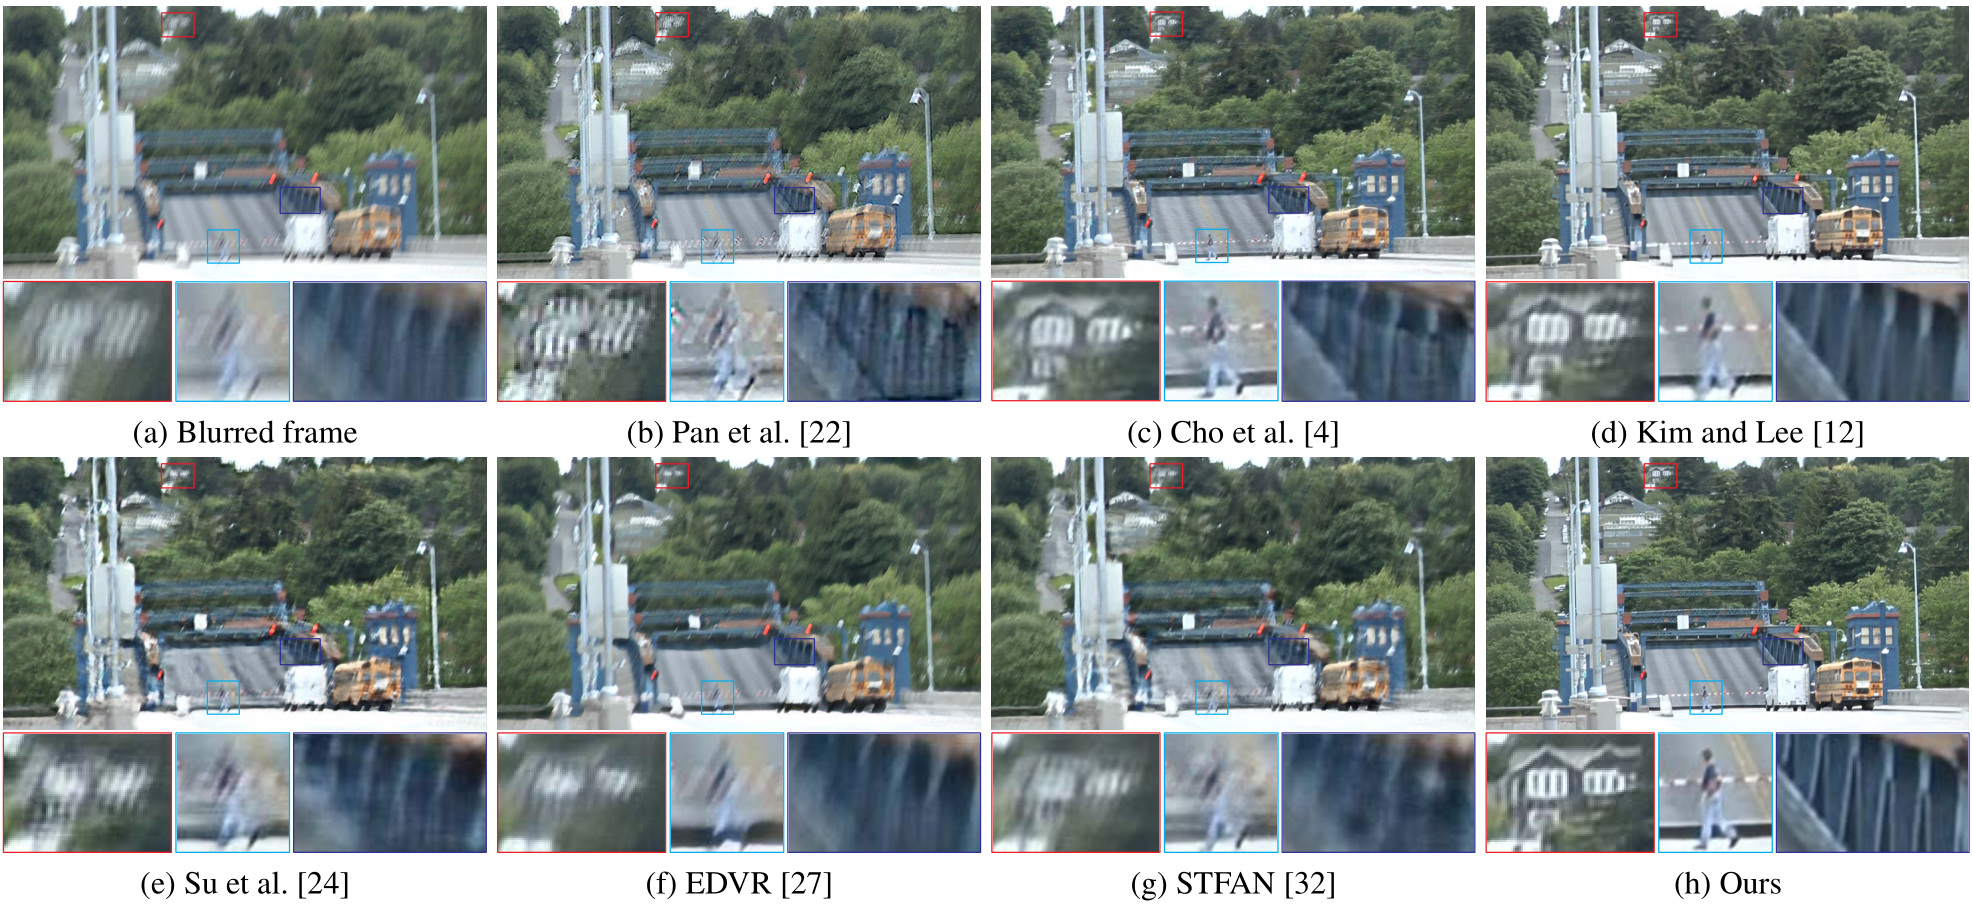 Figure 4. Deblurred results on a real video from [4].